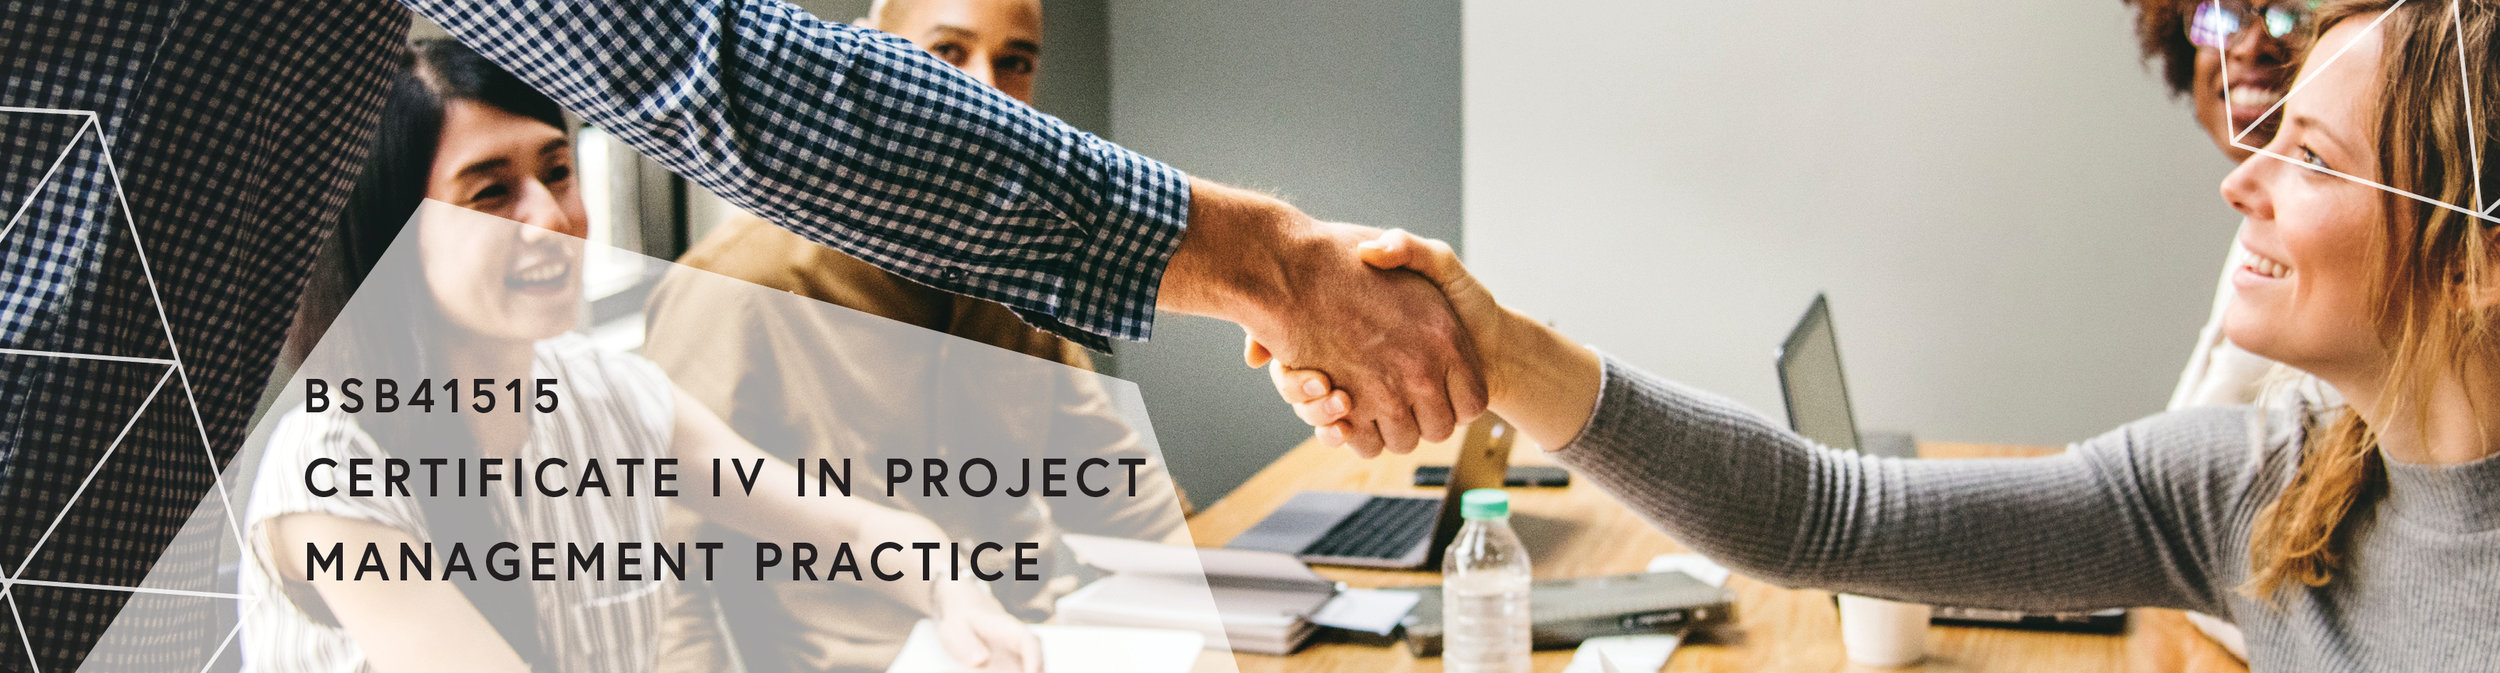 Certificate IV in Project Management Practice